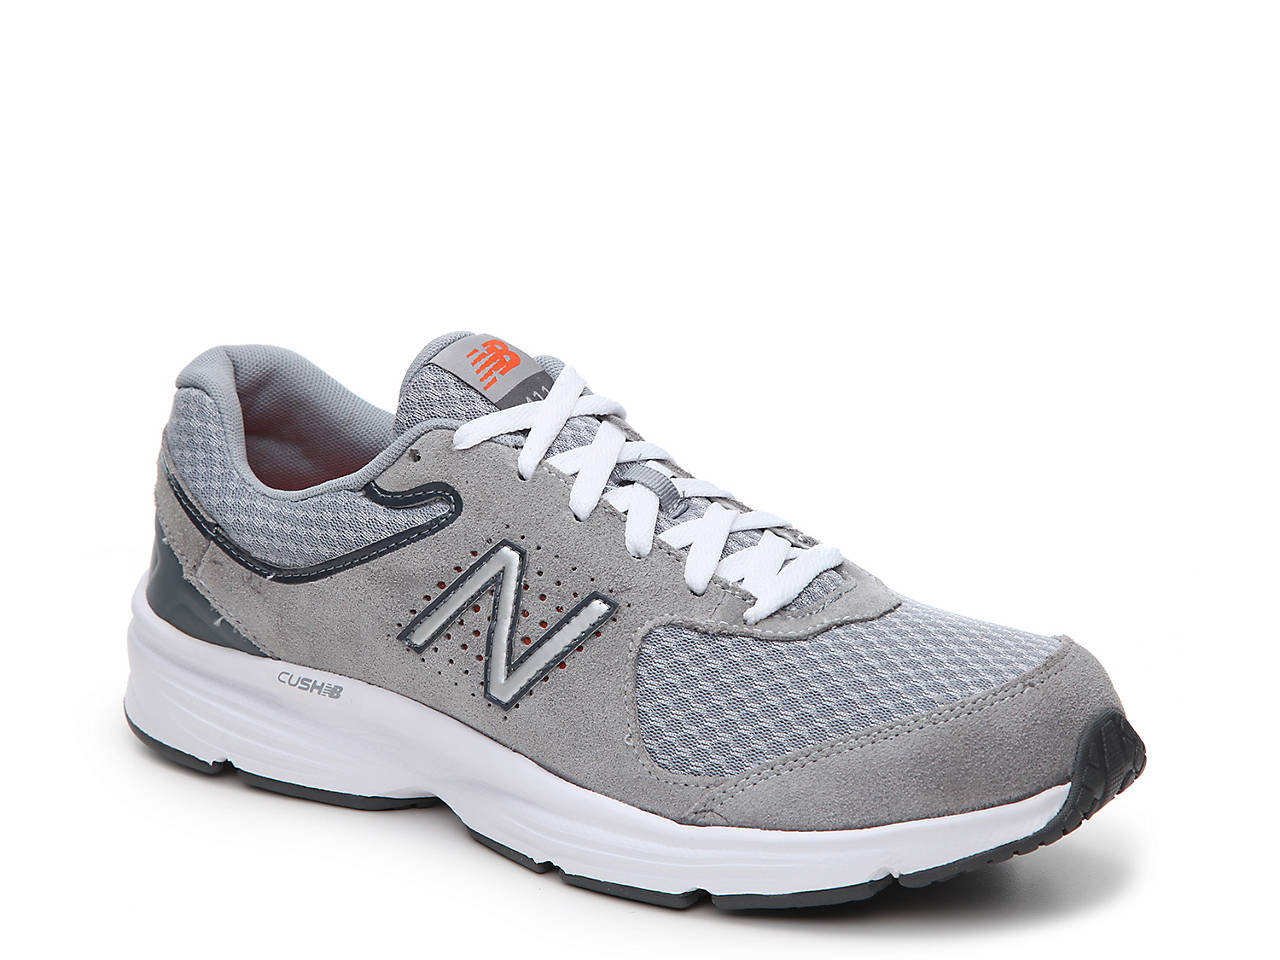 94ad3c35650 New Balance. 411 Walking Shoe - Men s